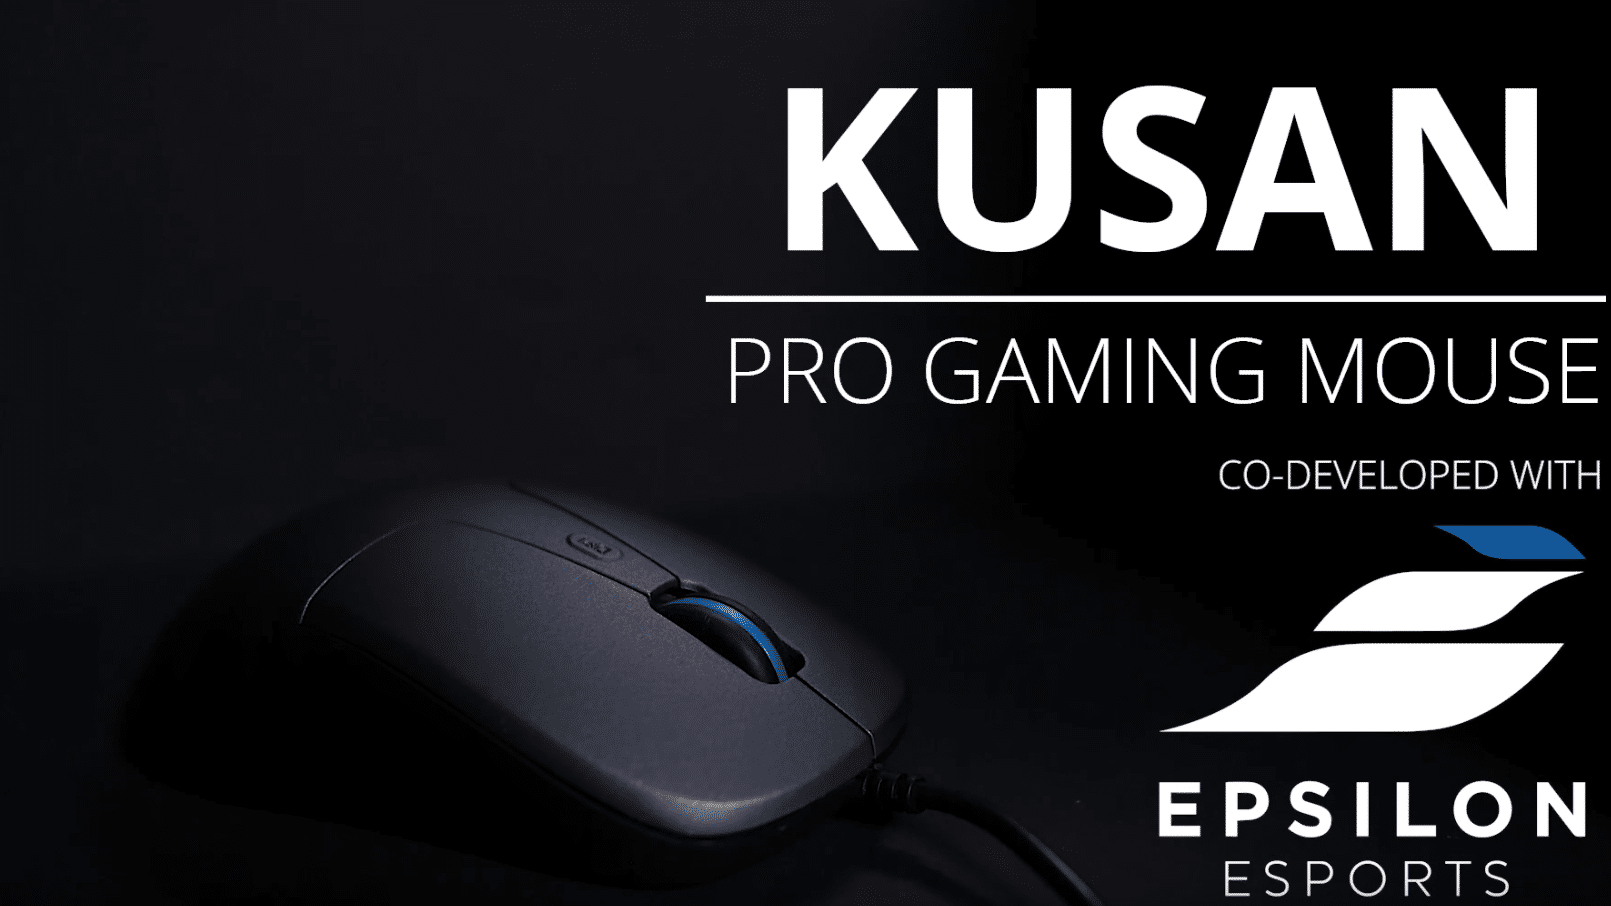 Photo of Neue Gaming-Maus von Trust: GXT180 Kusan Pro